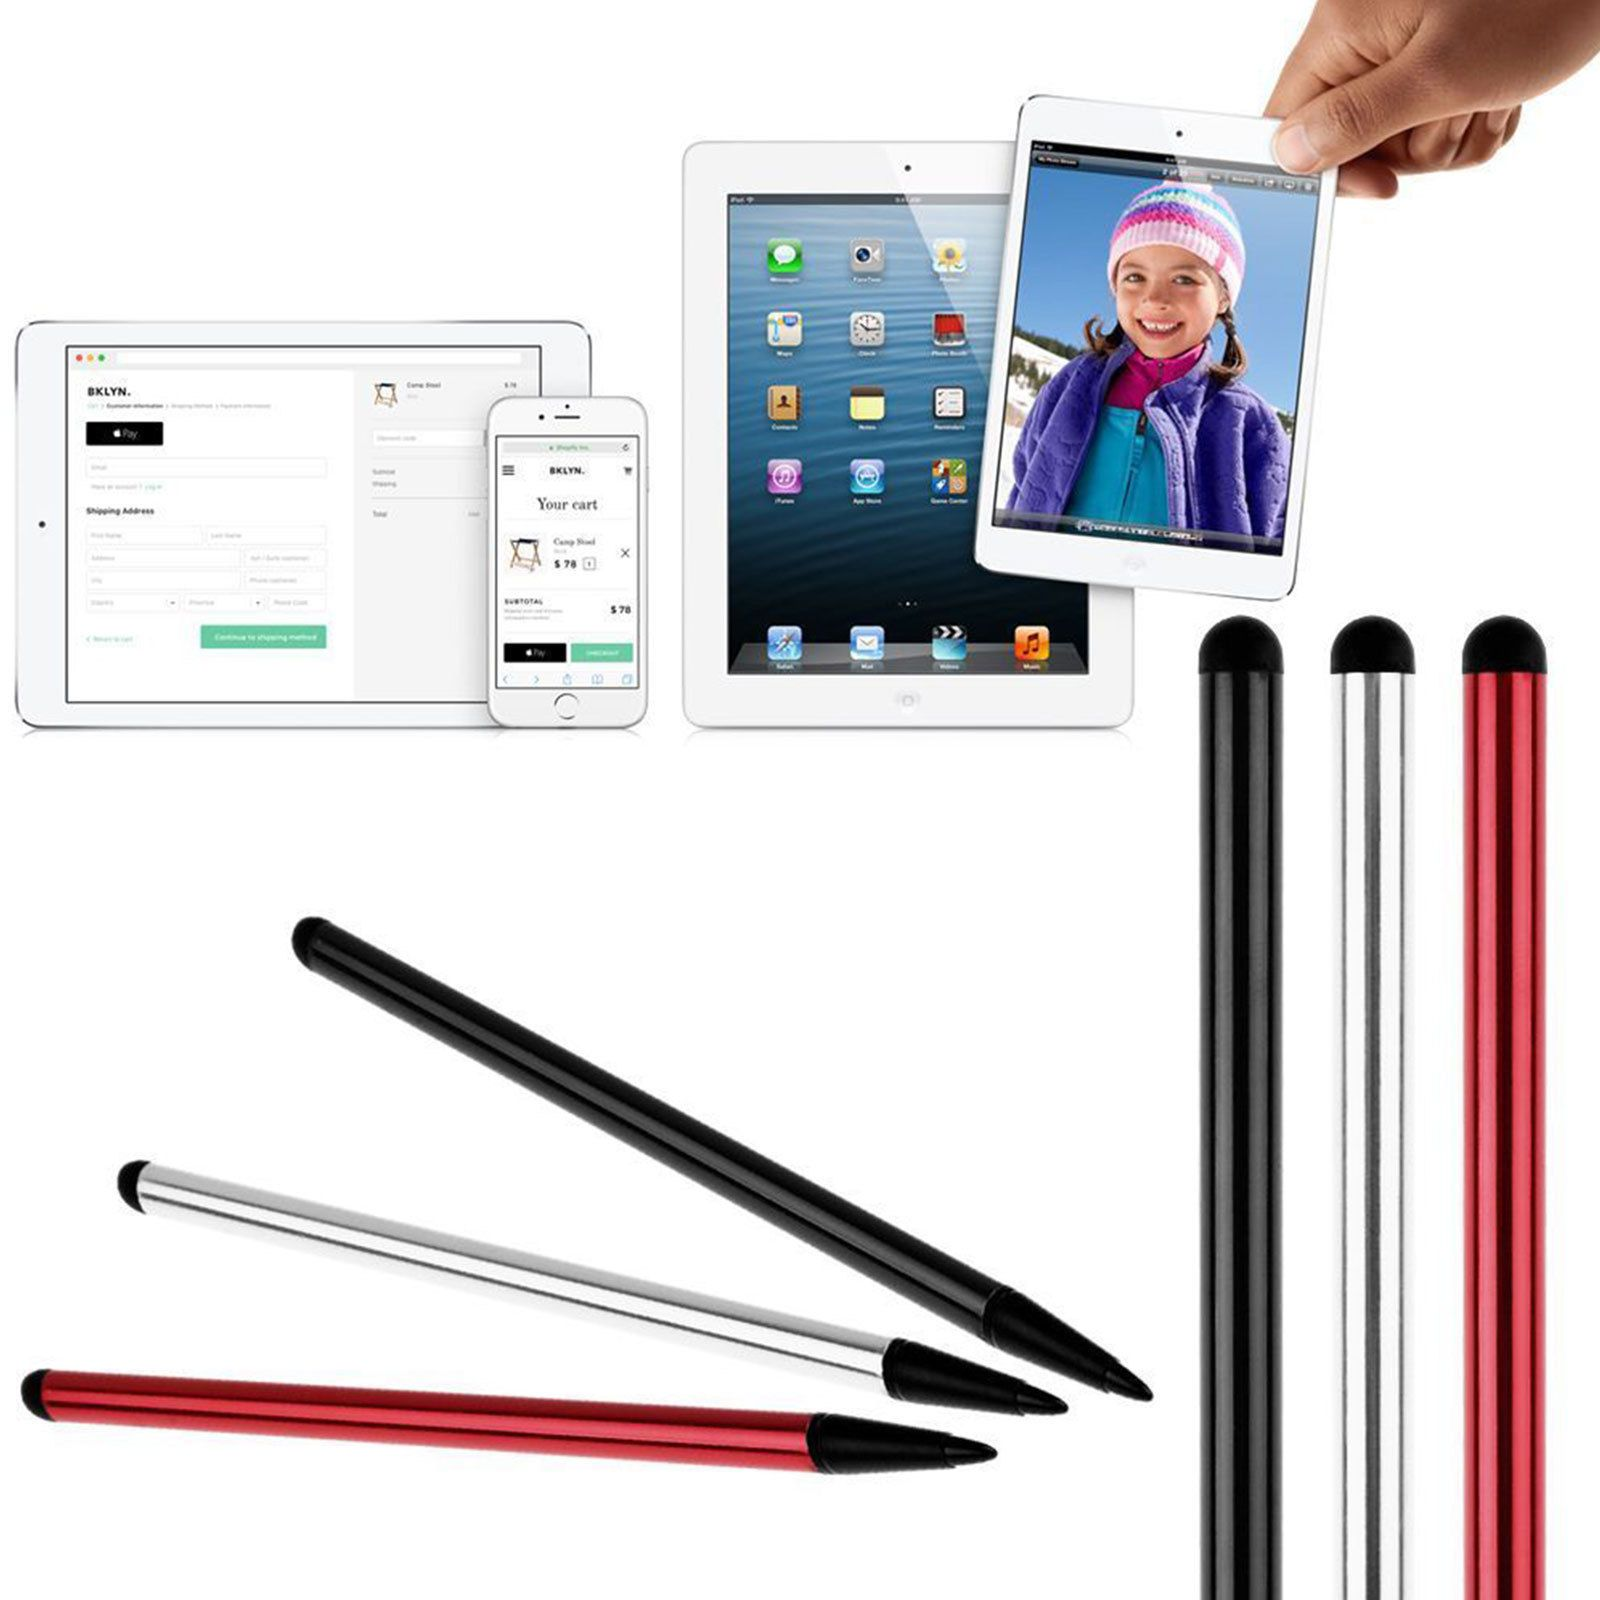 2 in 1 Touch Screen Pen Stylus For iPhone iPad Samsung Tablet Phone PC Universal